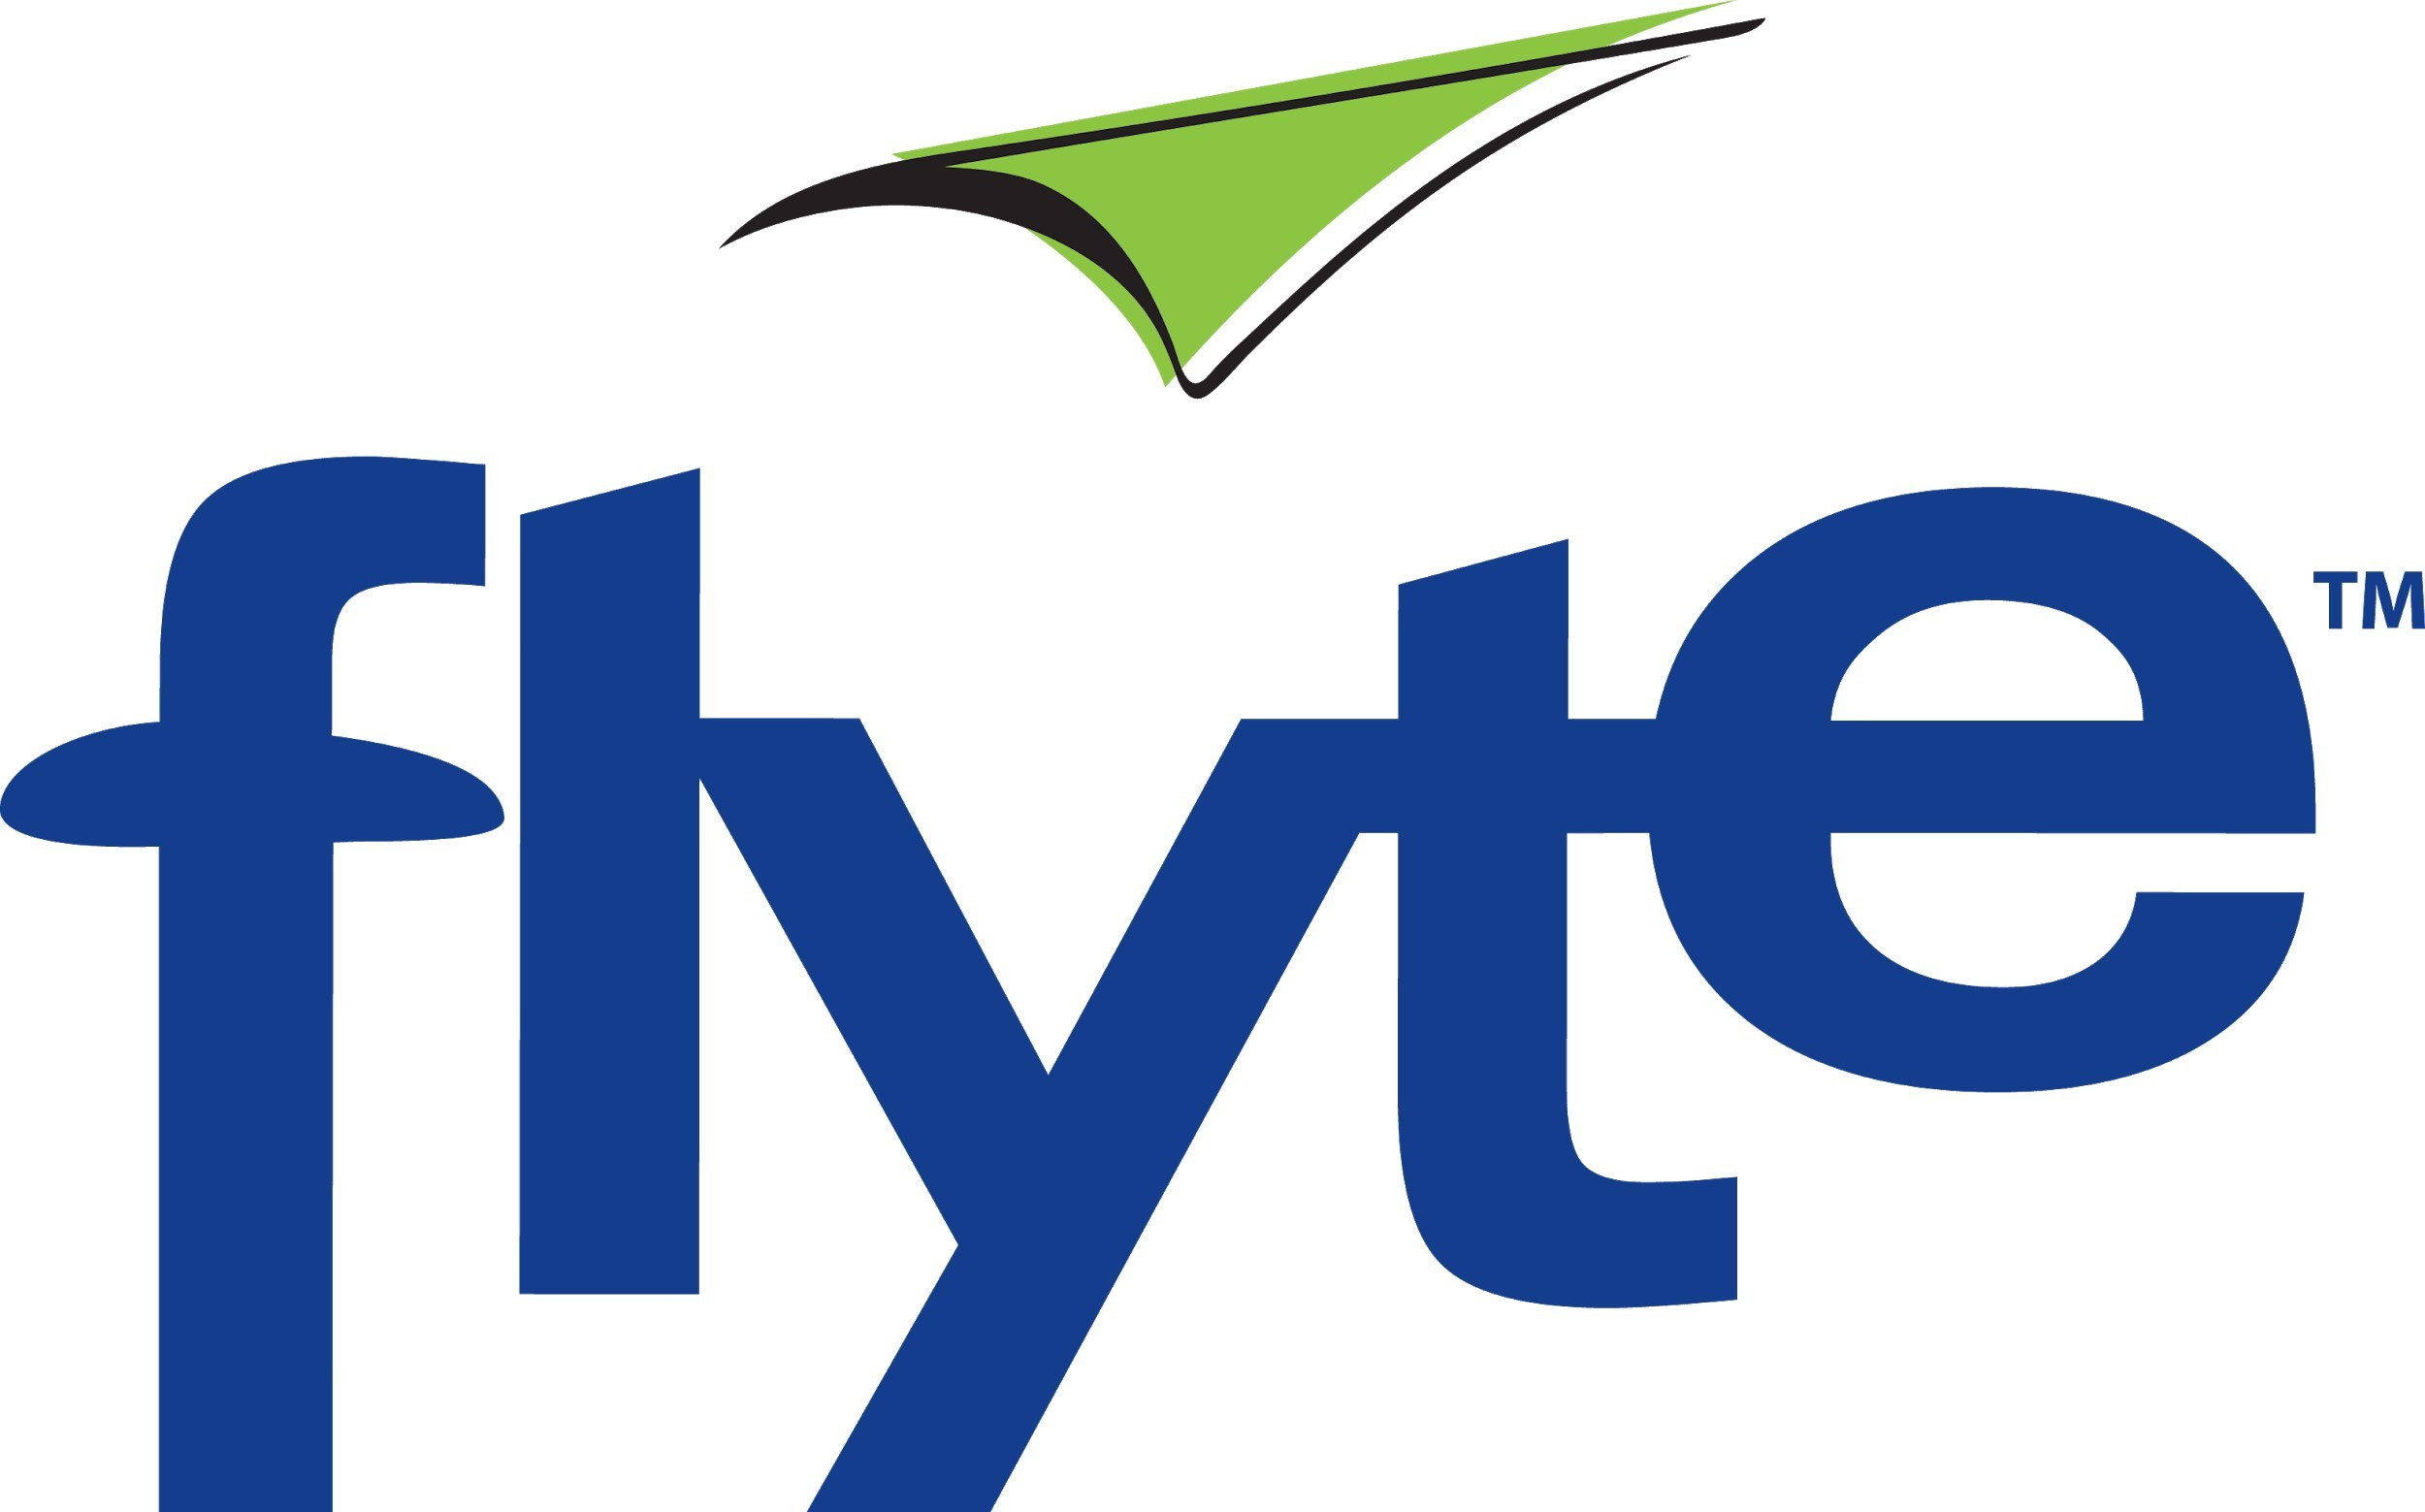 Flyte Concentrates (CNW Group/Flower One Holdings Inc.)